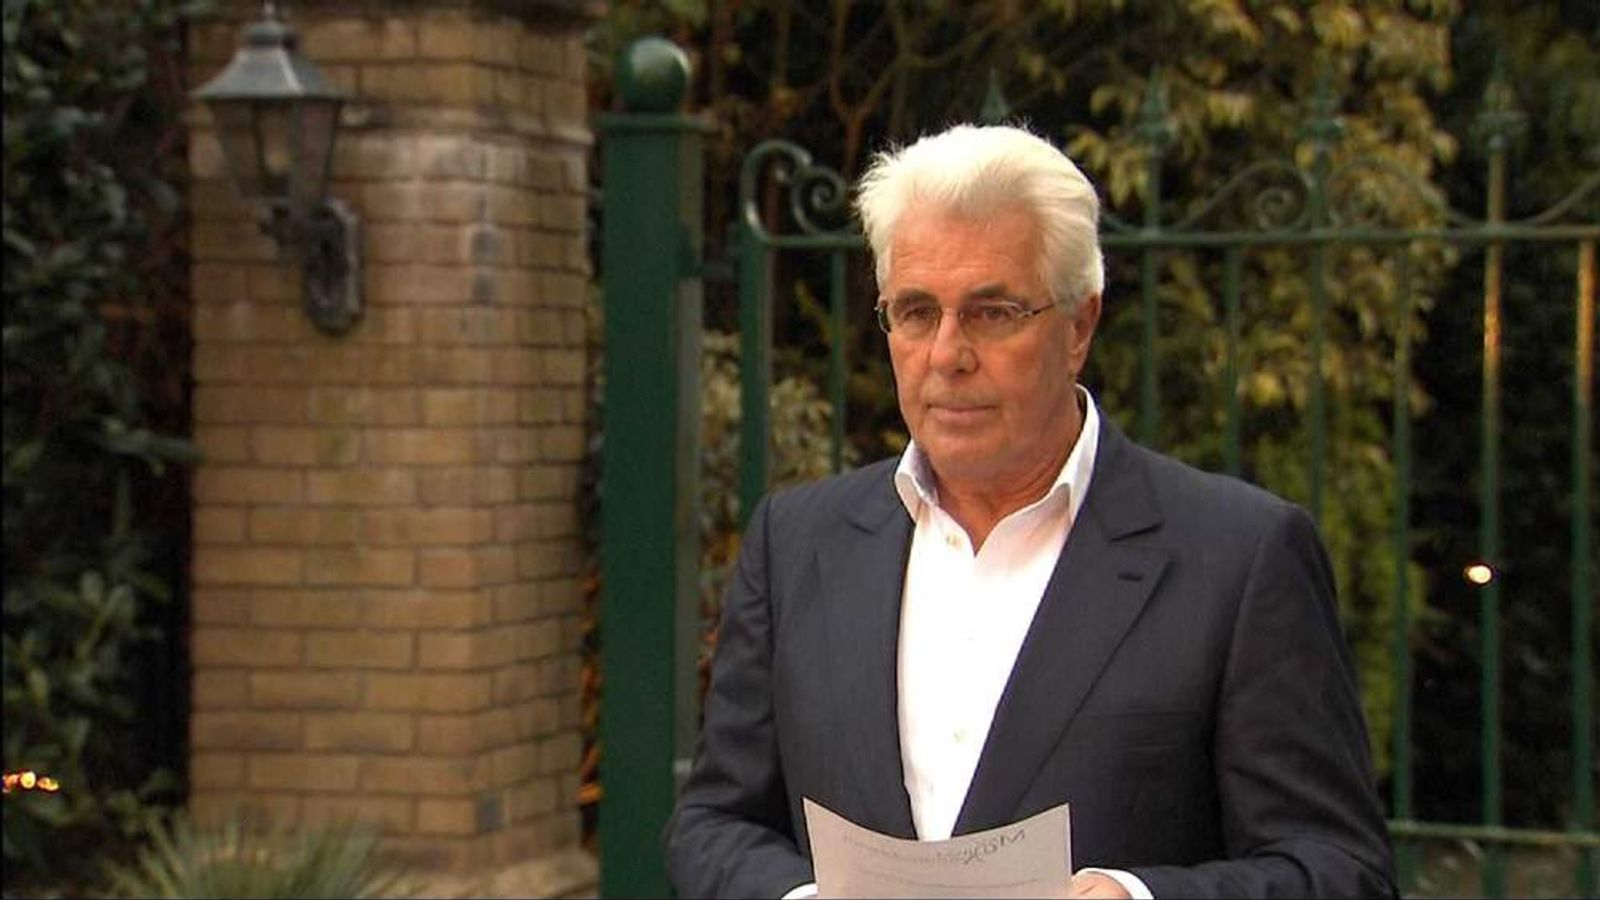 Max Clifford denies indecent assault allegations